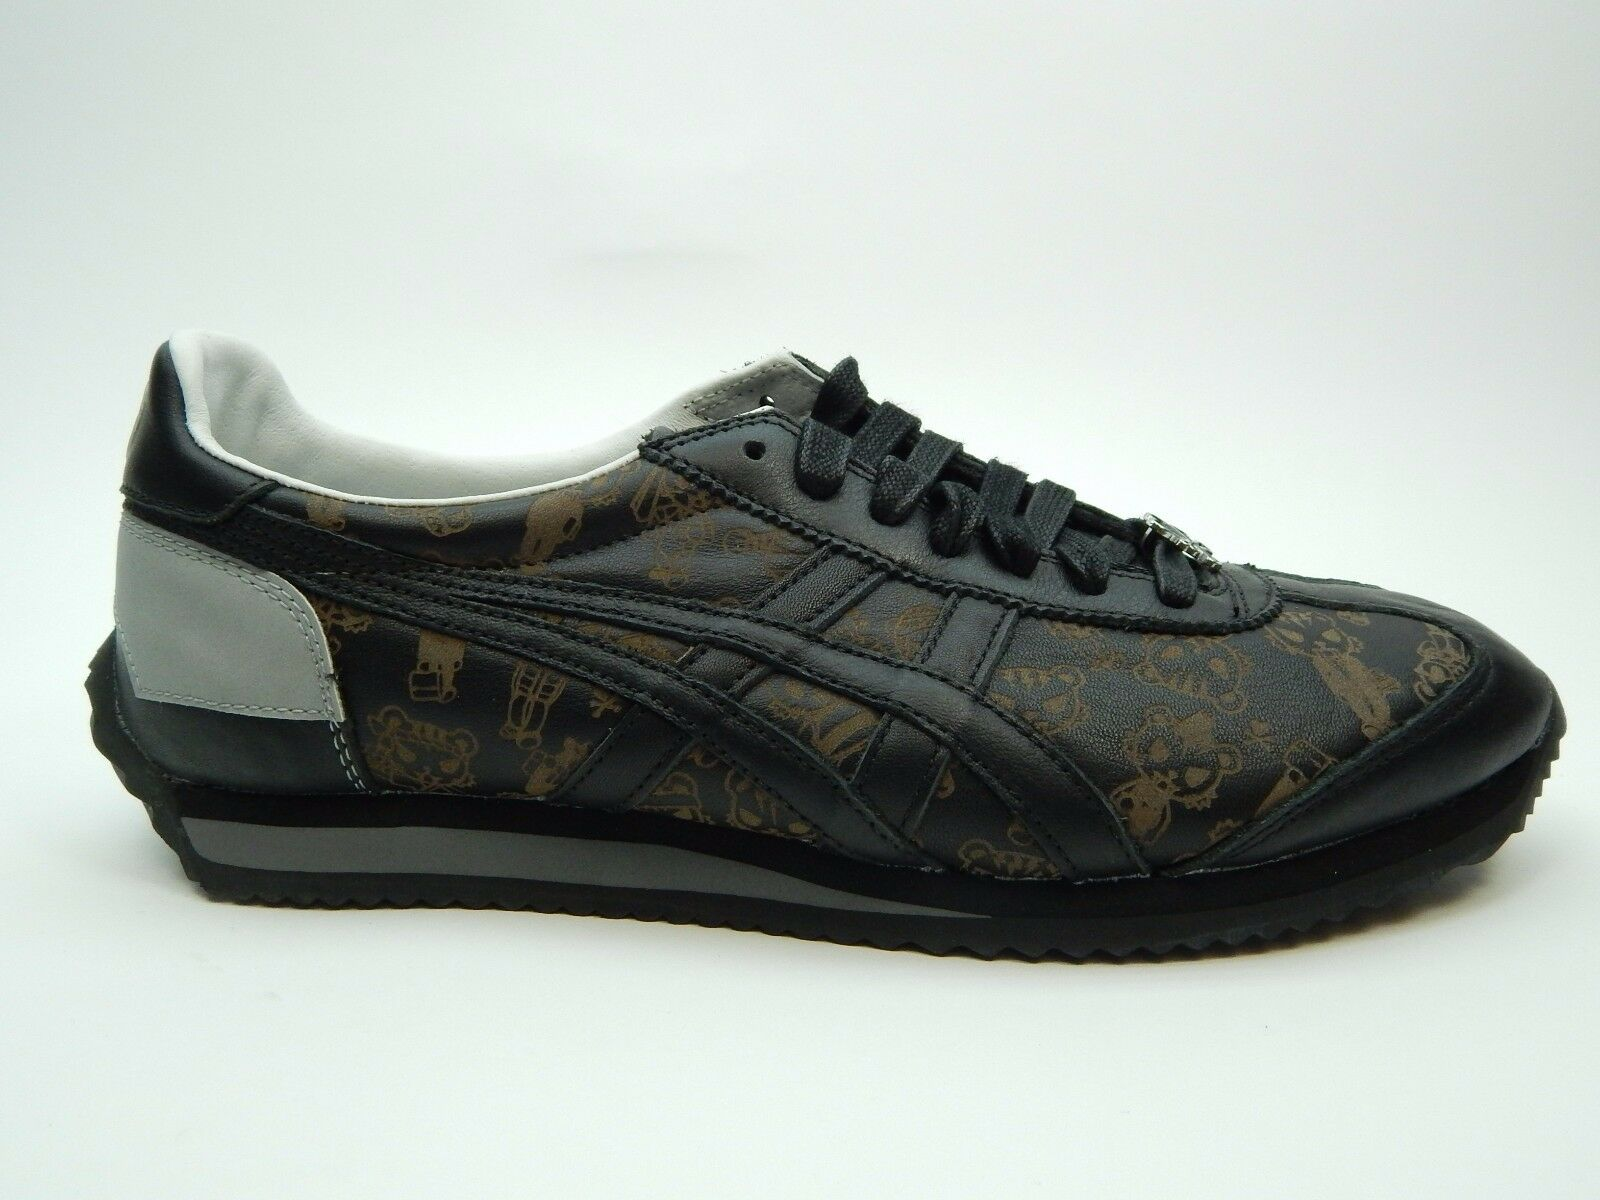 ONITSUKA TIGER BLACK BLACK WOMEN SHOES SIZE 9.5 TO 11.5 Wild casual shoes